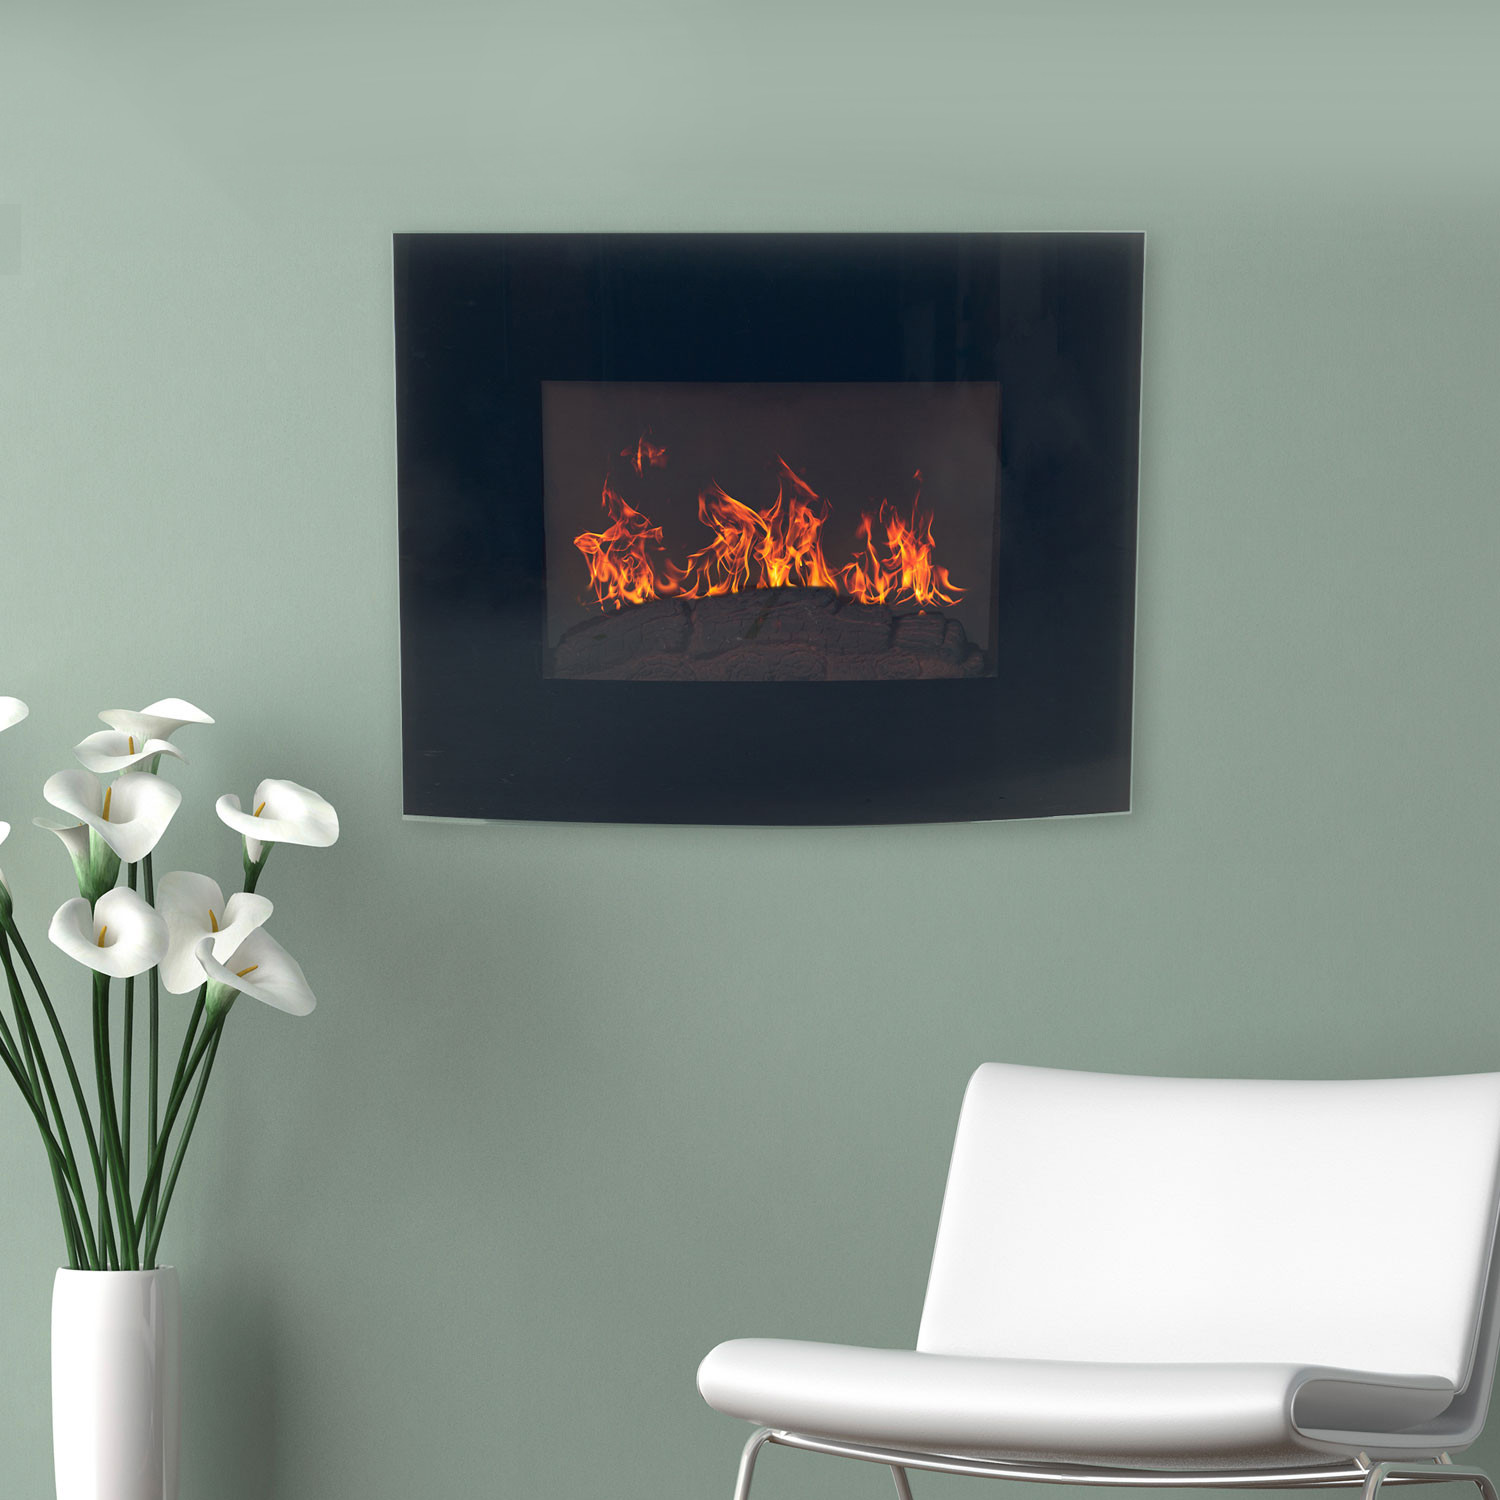 Northwest Wall Mounted Electric Fireplace + Remote // Curved Glass ...